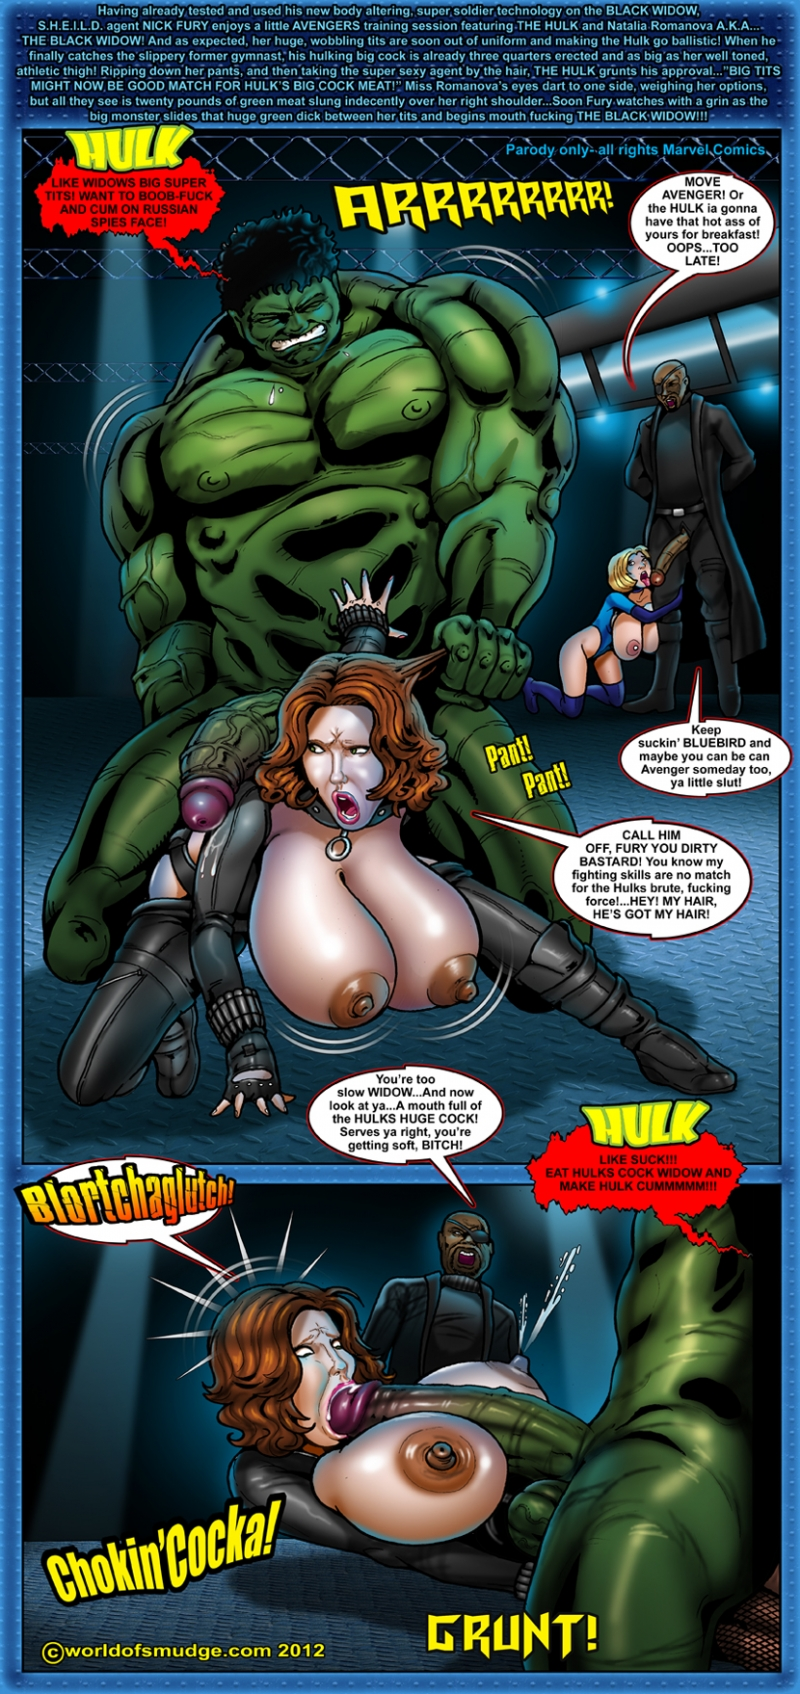 Hulk 967428 - Avengers Black_Widow BlueBird Hulk Marvel Nick_Fury Smudge.jpg